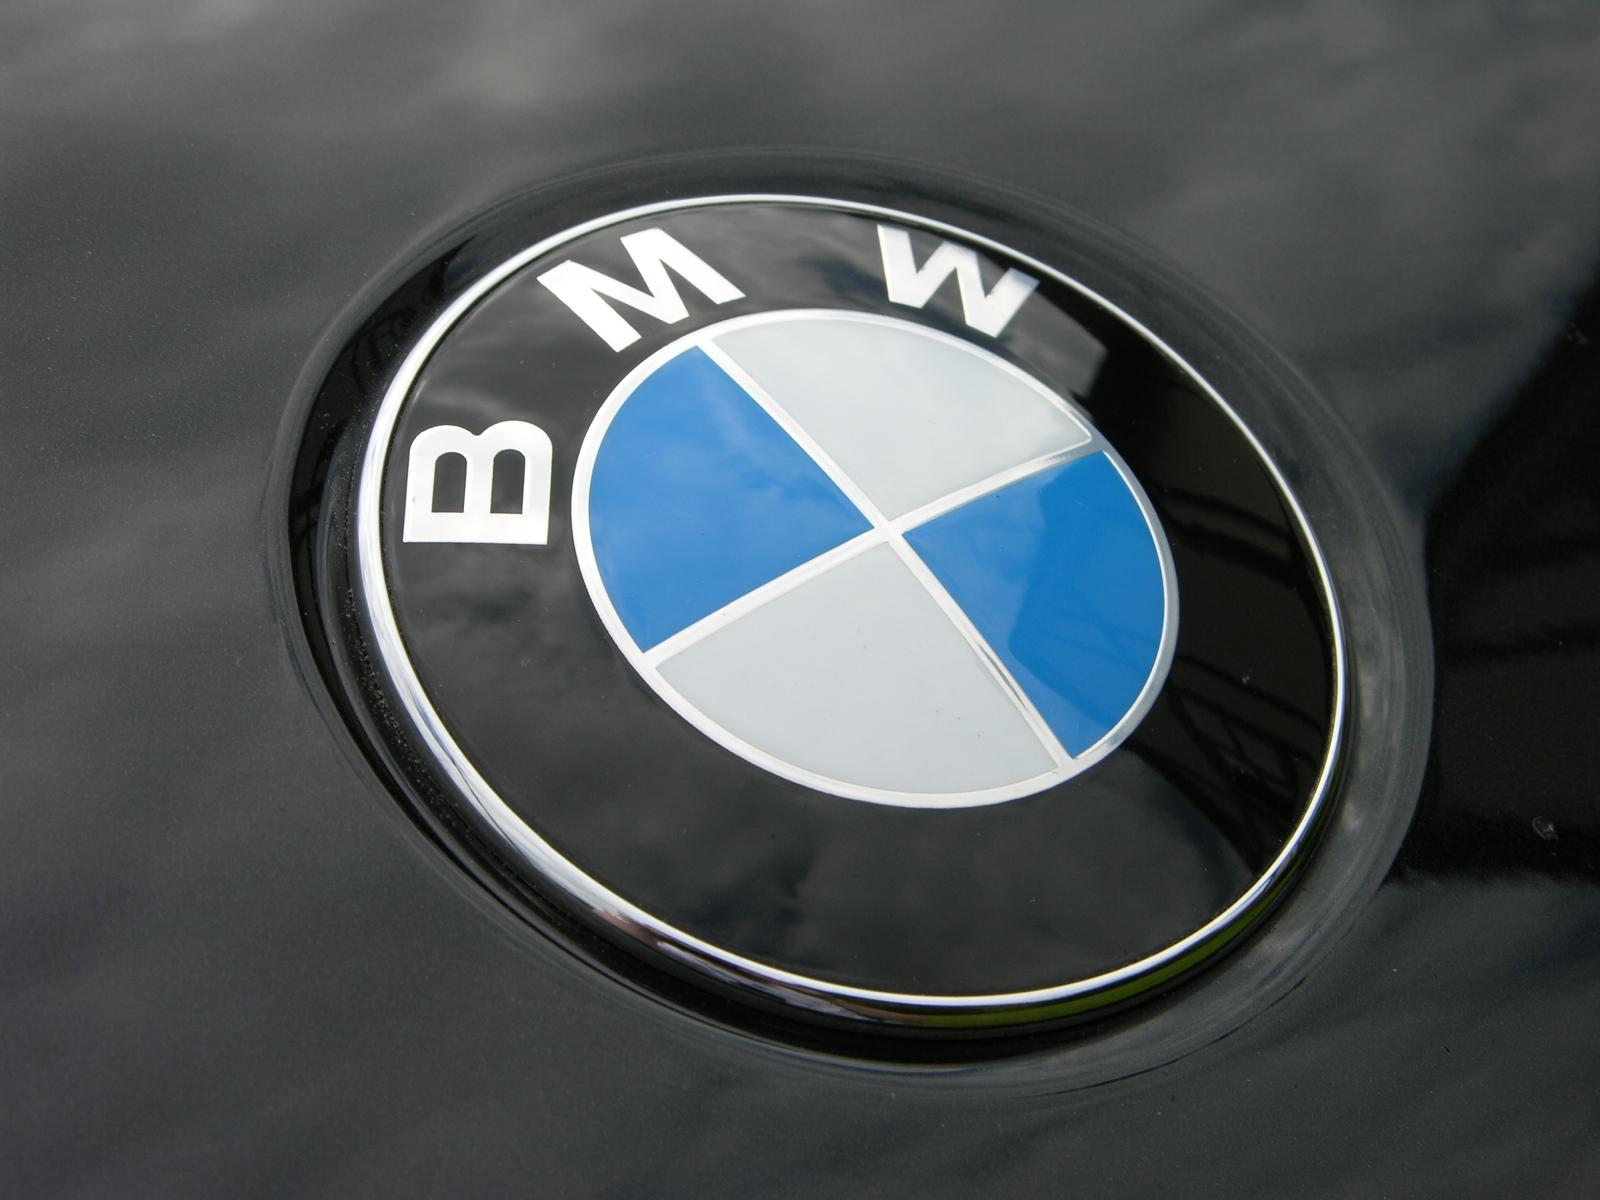 hq bmw logo wallpaper full hd pictures